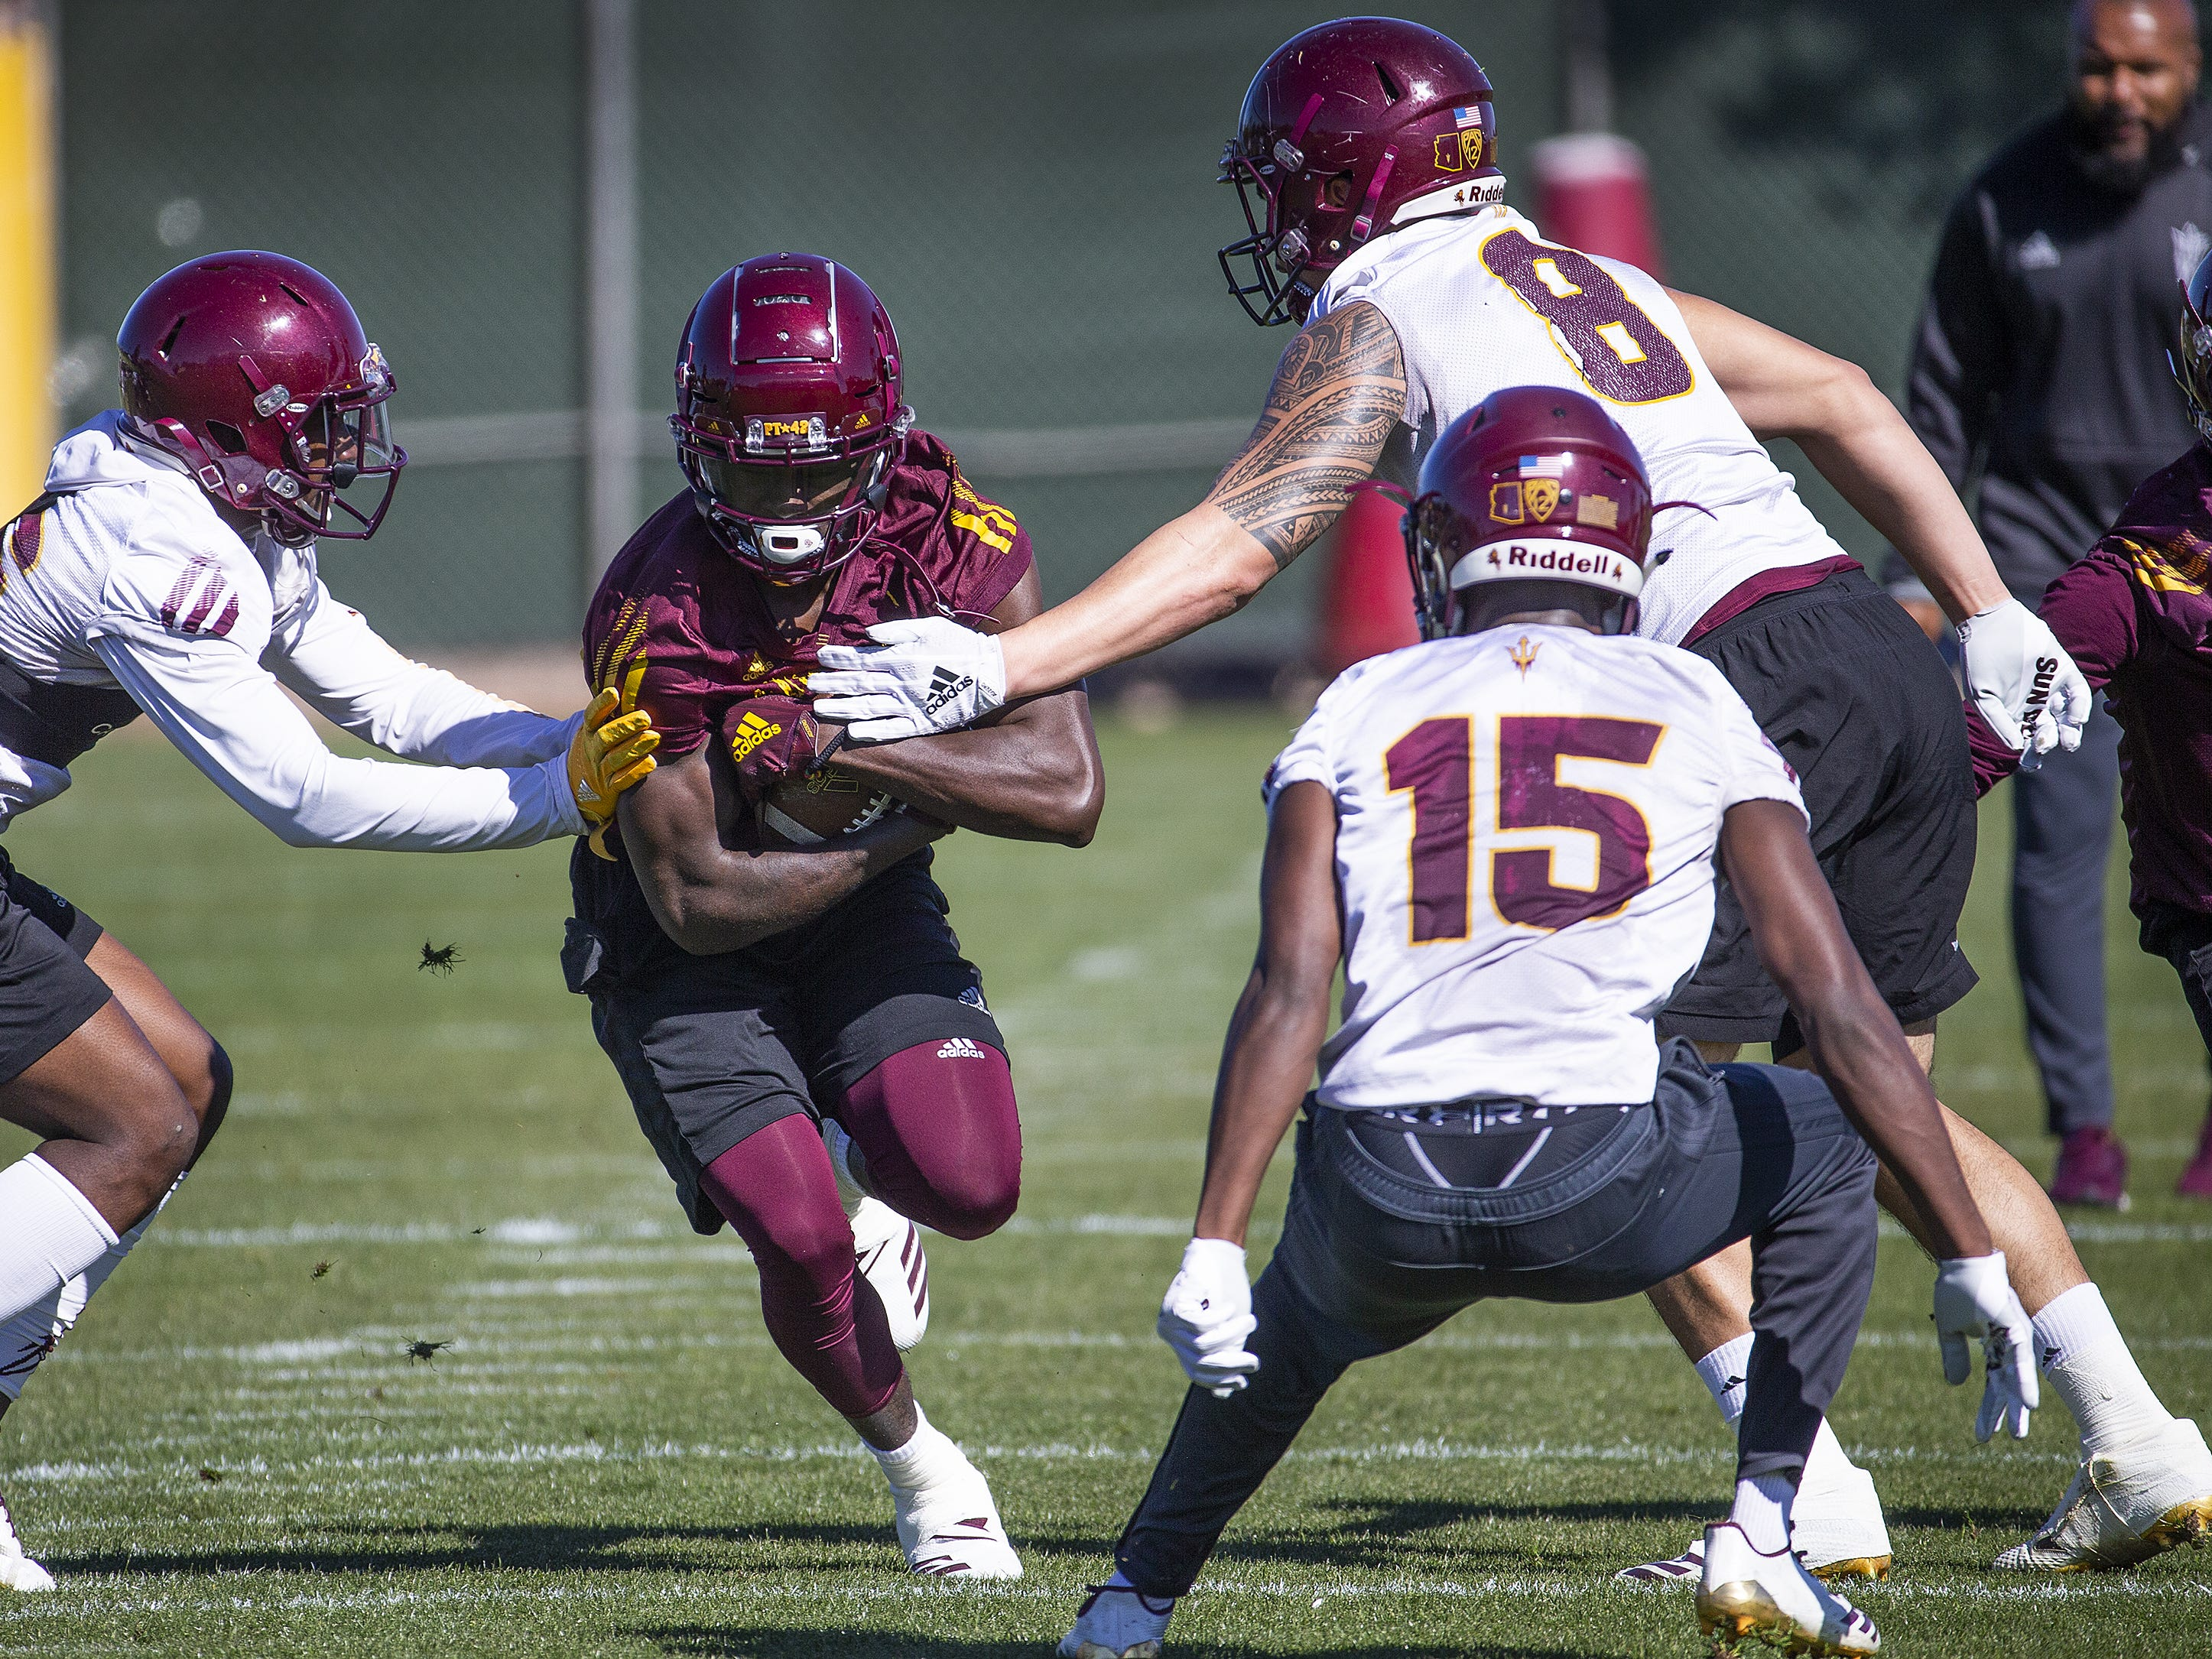 The Arizona State University football team practiced in Tempe, Tuesday, February 26, 2019.  Wide receiver Brandon Aiyuk runs with the ball.